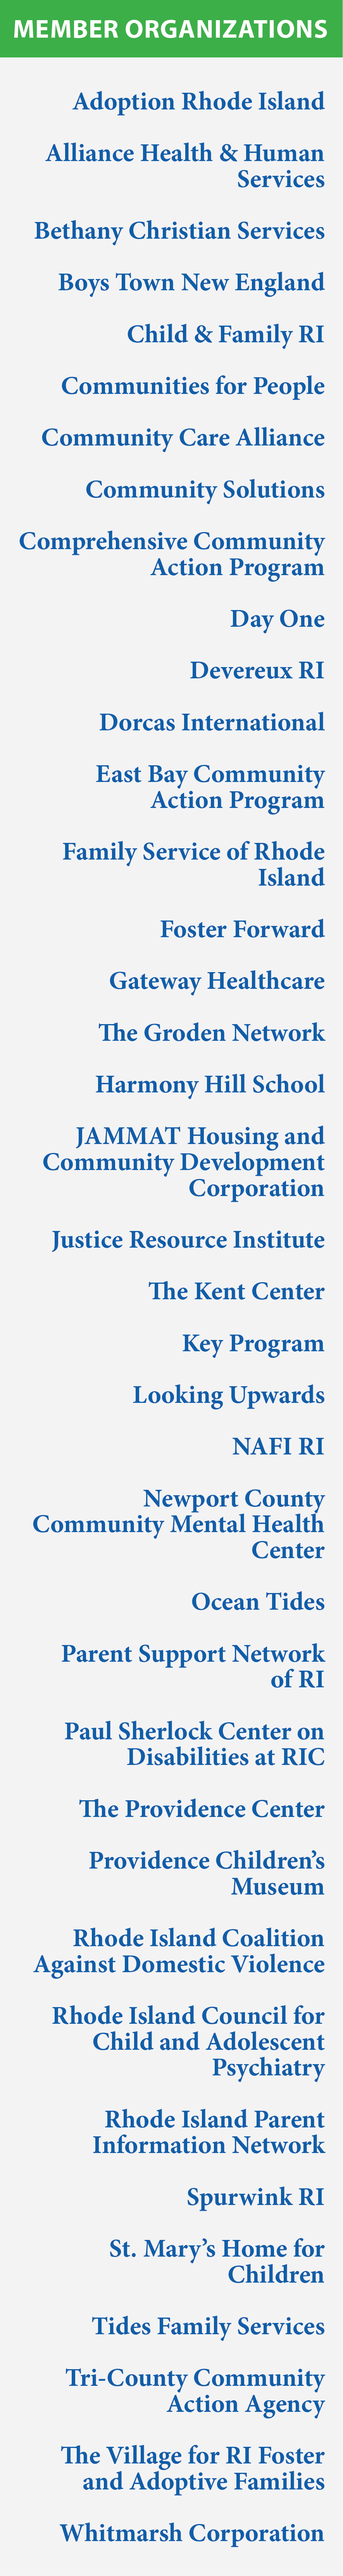 Rhode Island Coalition for Children and Families (RICCF) member organizations.